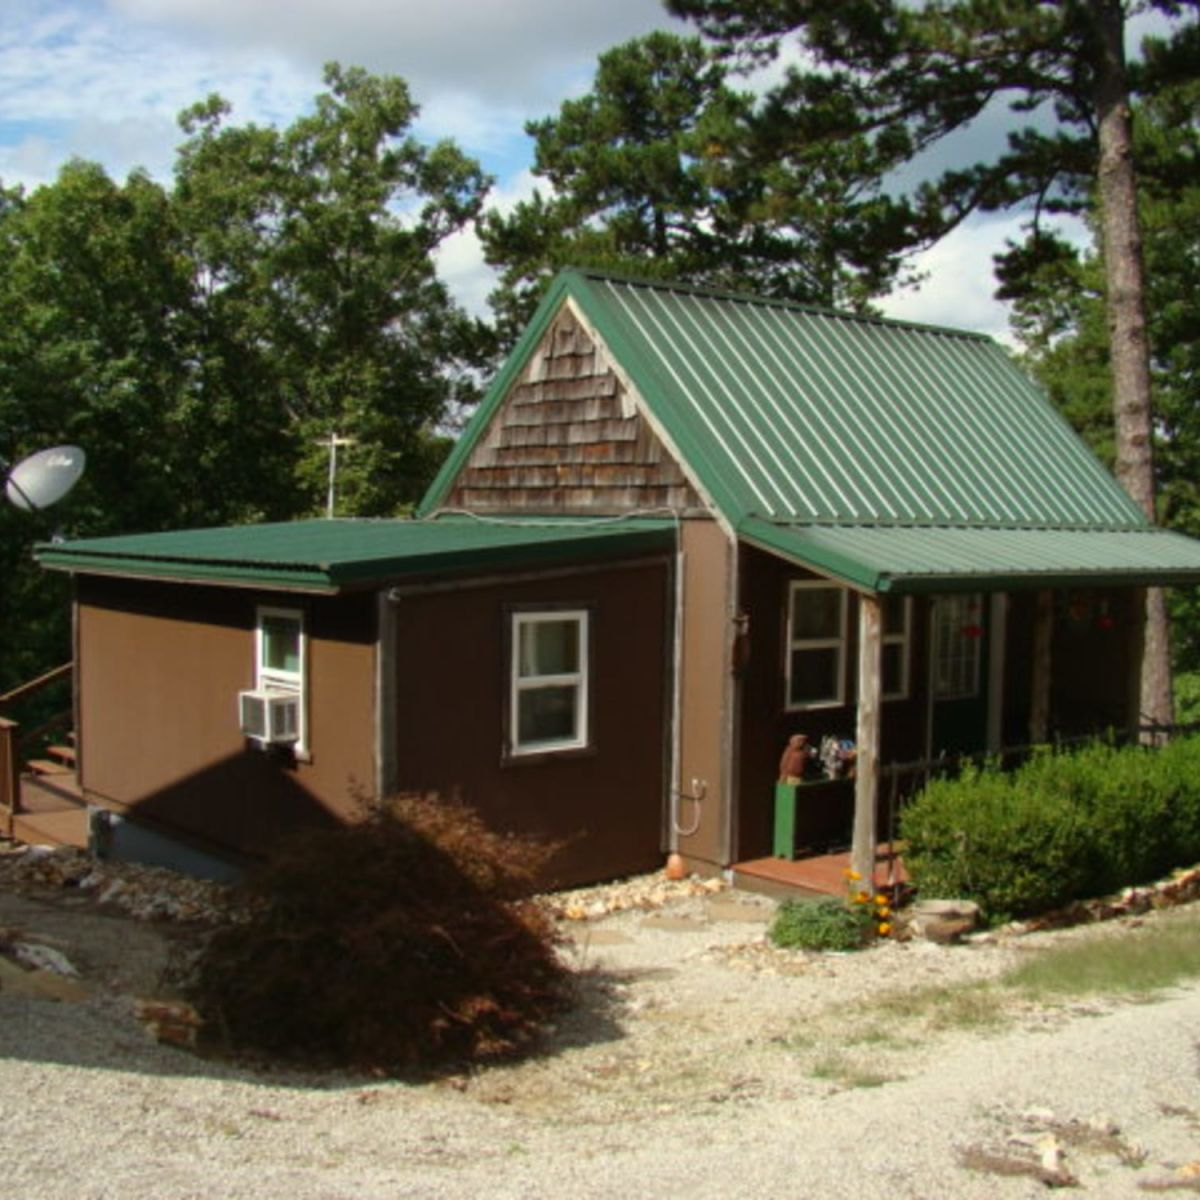 Tiny Houses For Sale In Arkansas Tiny Houses For Sale Rent And Builders Tiny House Listings Tiny House Listings